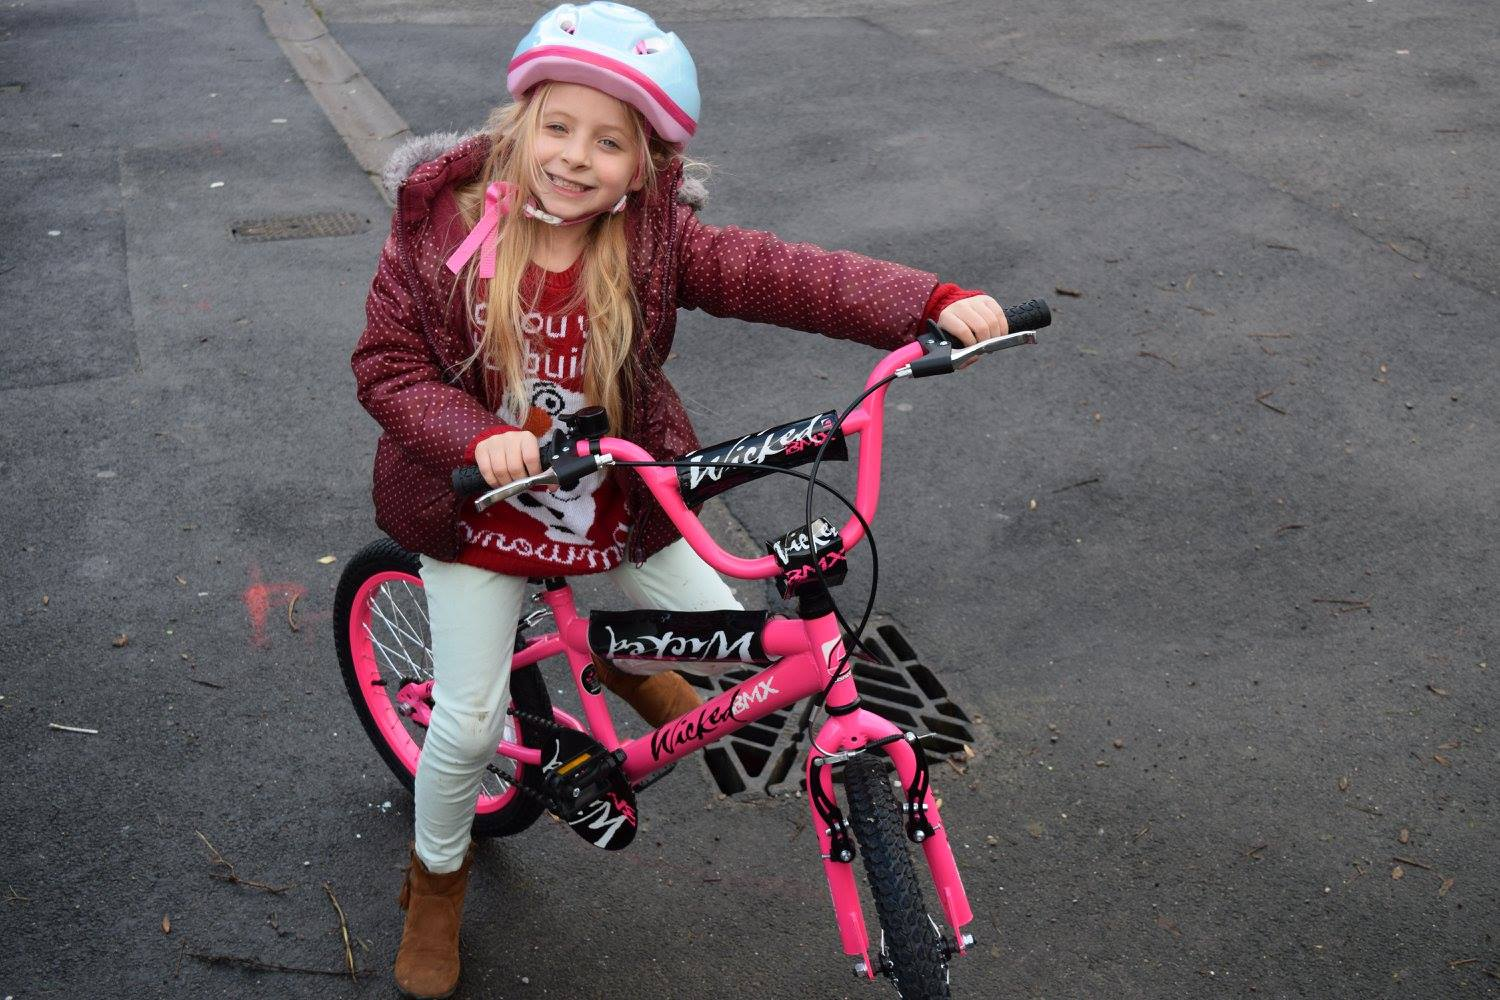 Caitlin posing for a photo on her new bmx bike - Serenity you